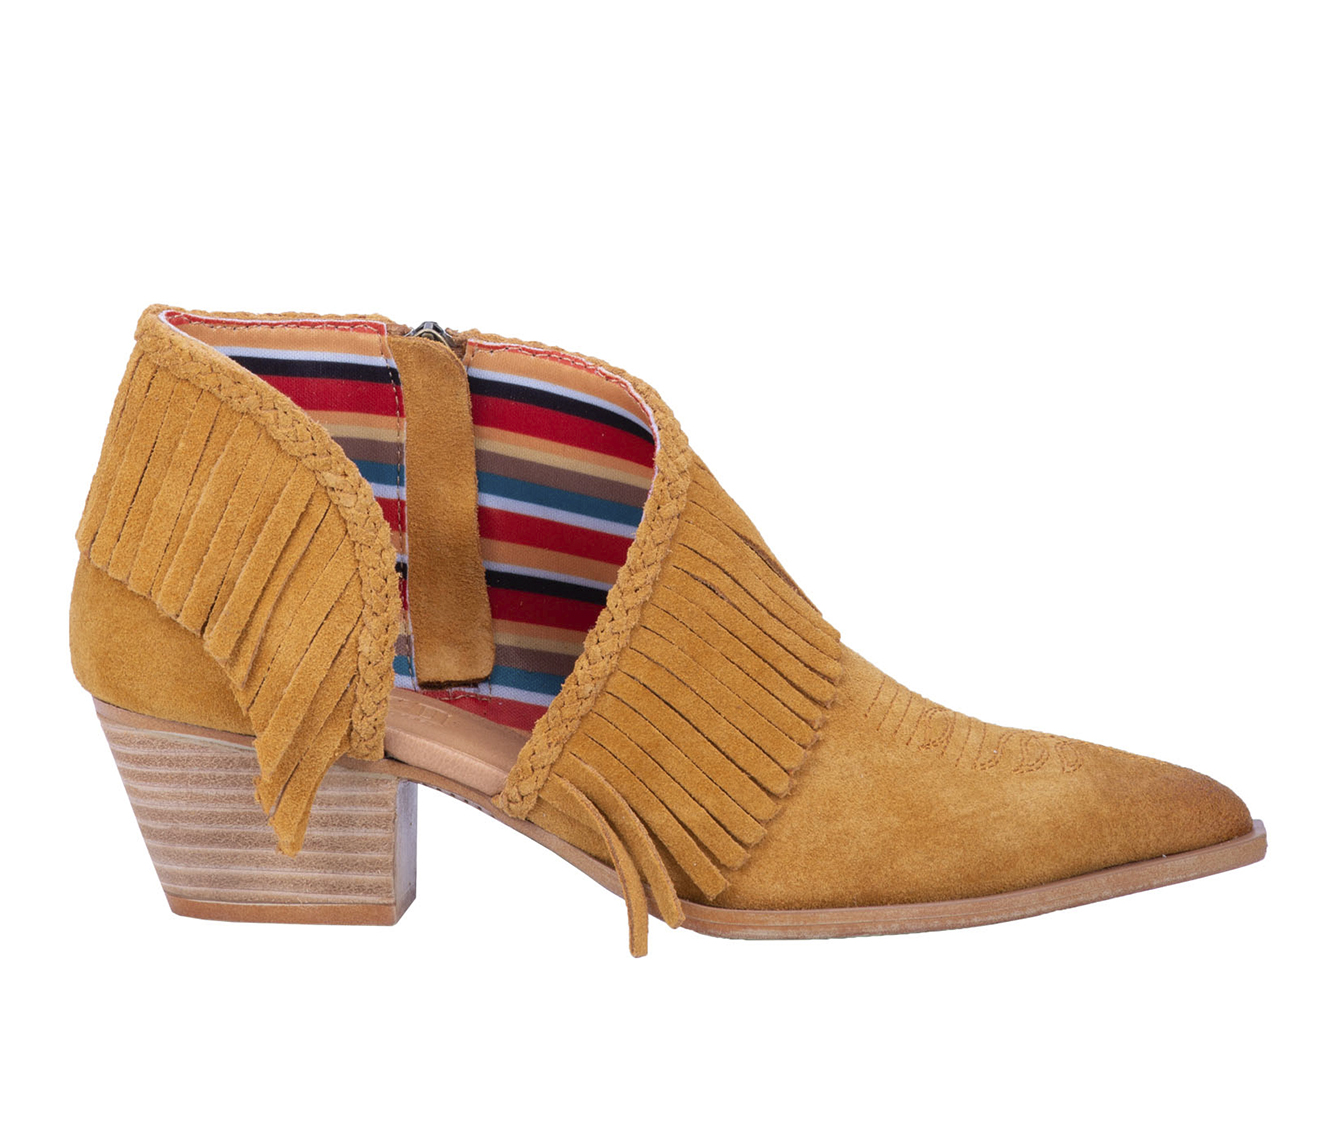 Dingo Boots KindRed Spirit Women's Boots (Yellow - Leather)